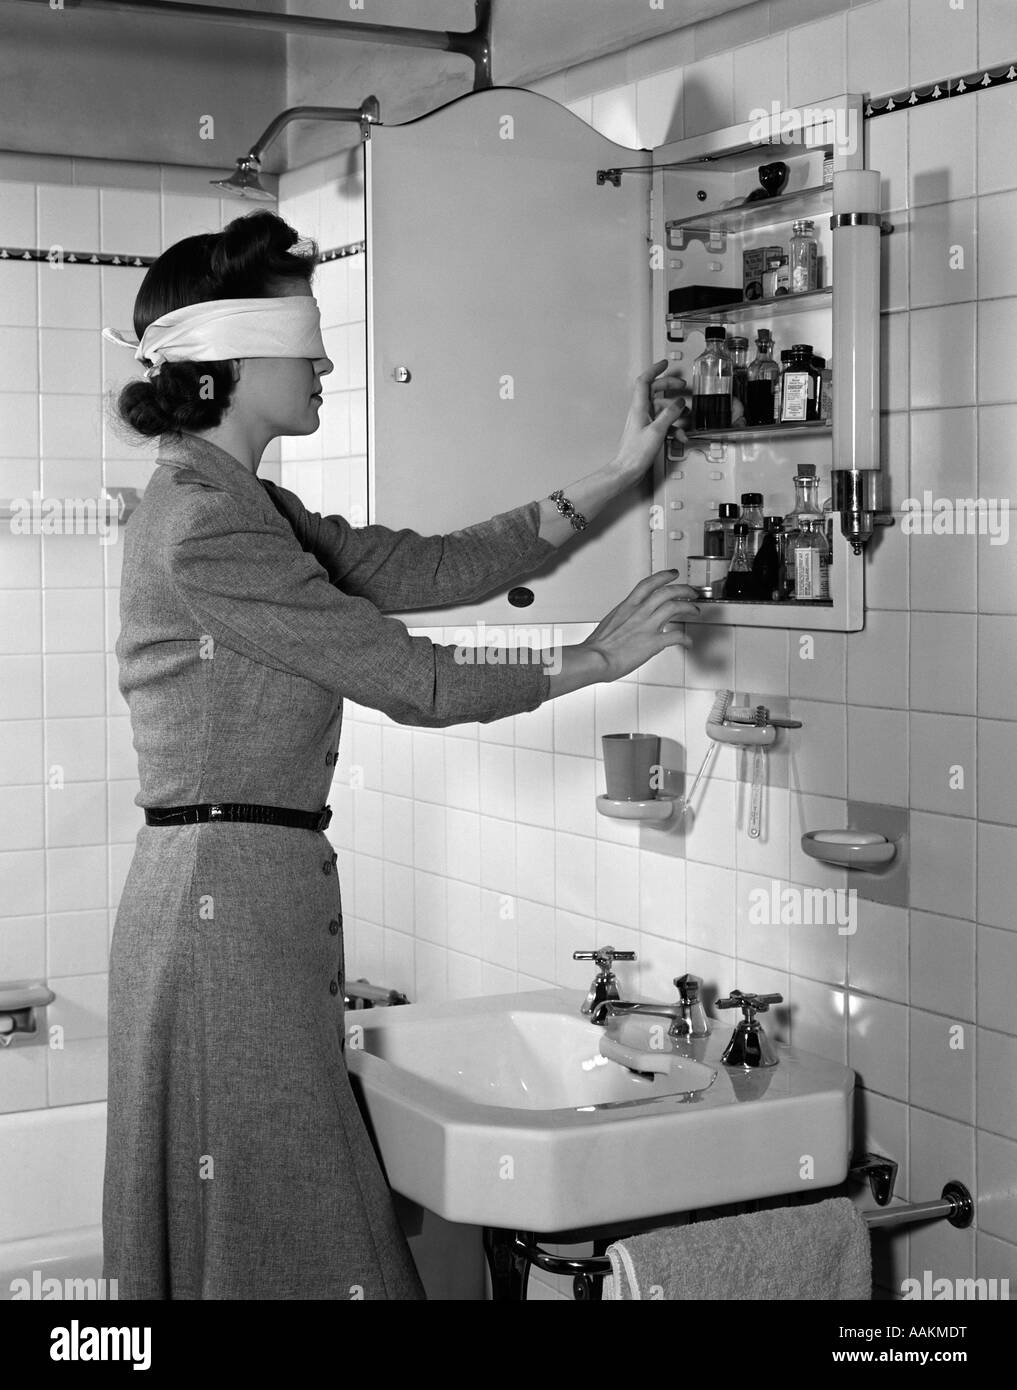 1940s Woman Wearing Blindfold Reaching Into Bathroom Medicine Cabinet   Stock Image